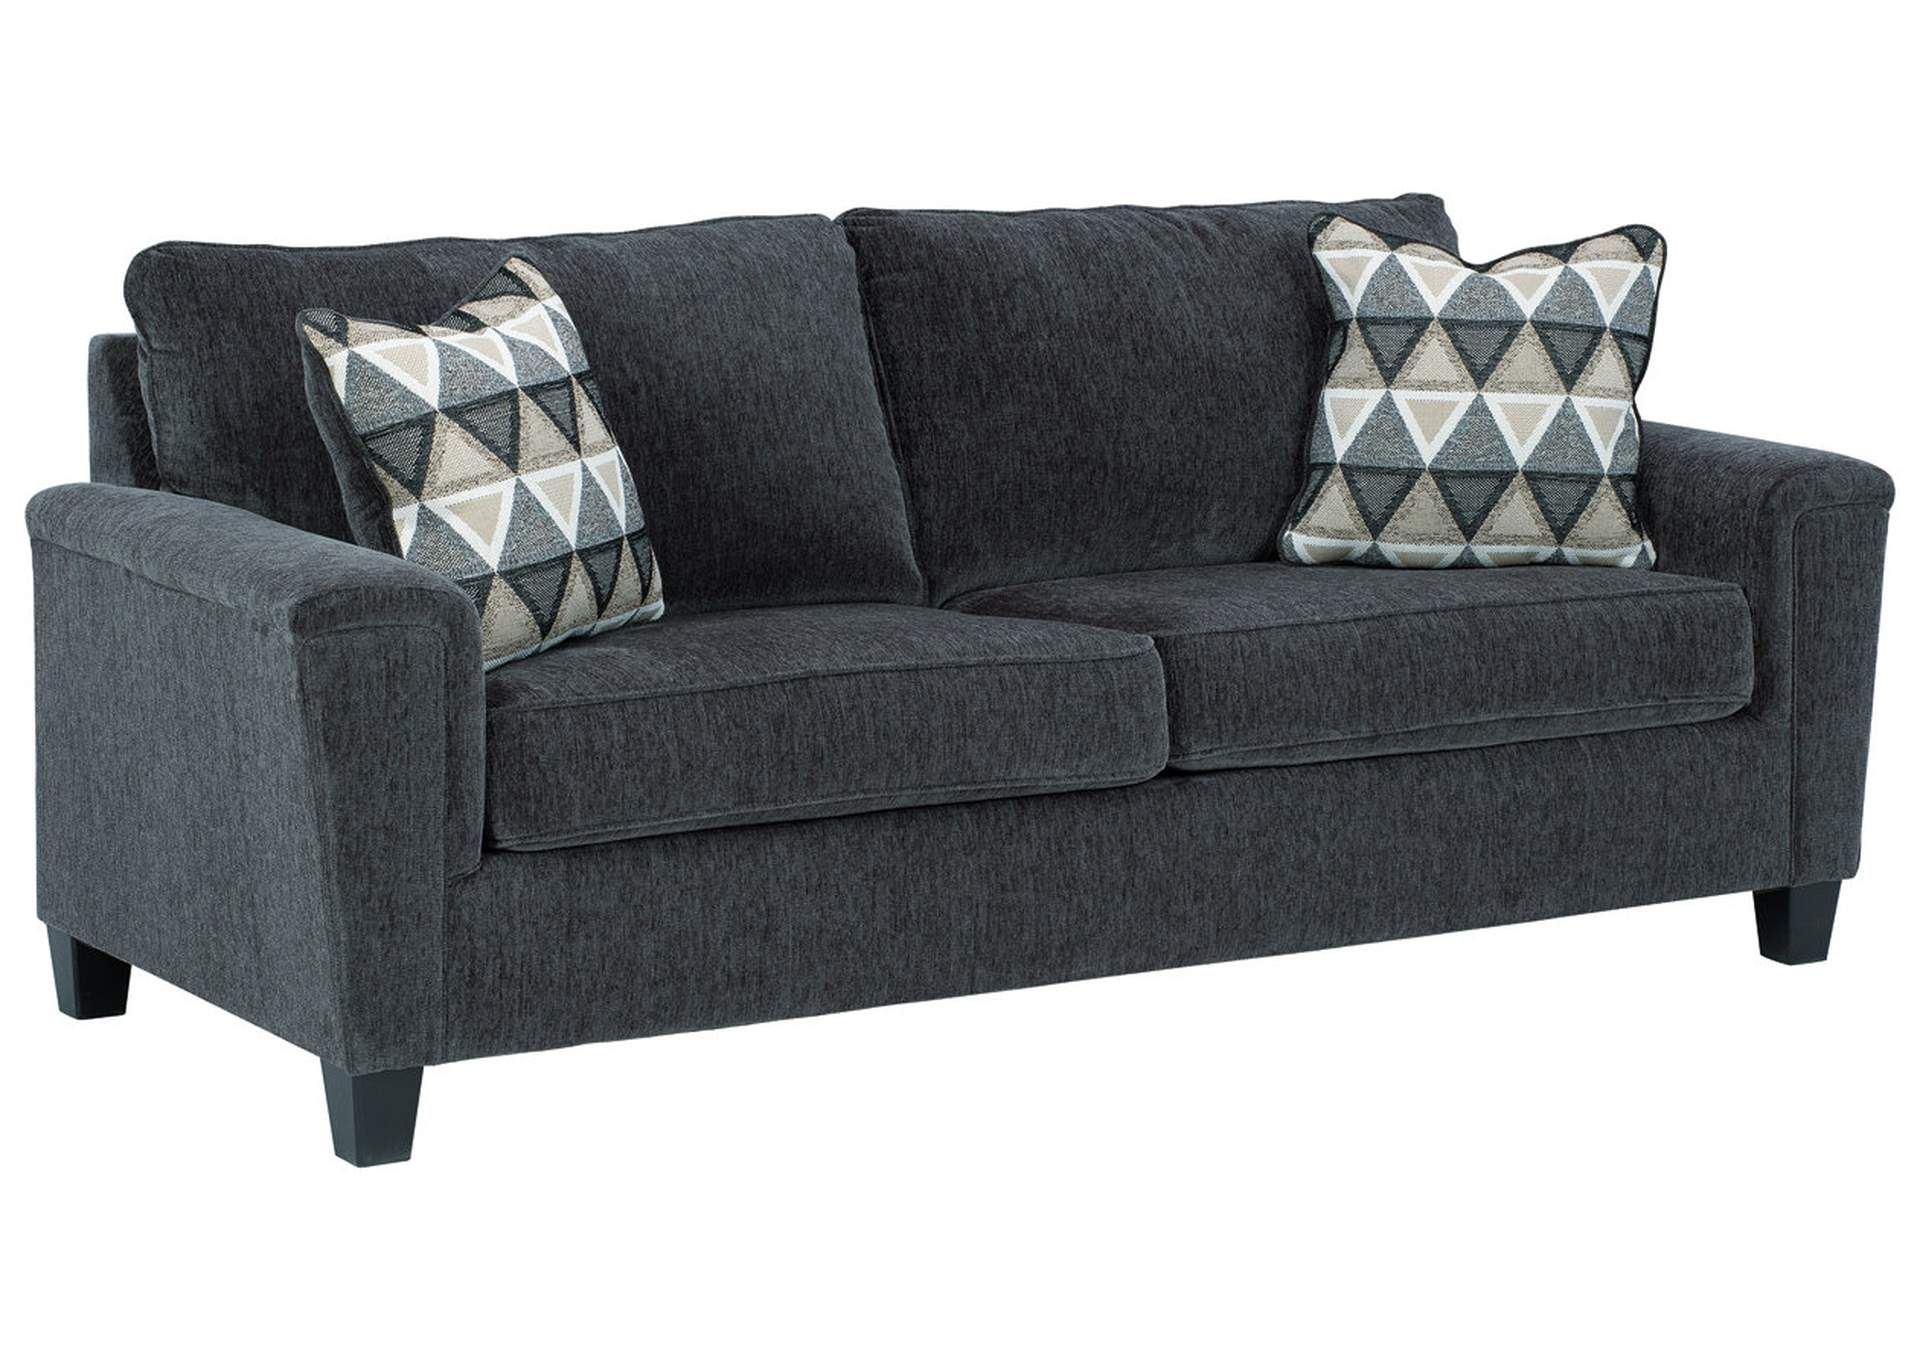 Abinger Queen Sofa Sleeper,Signature Design By Ashley